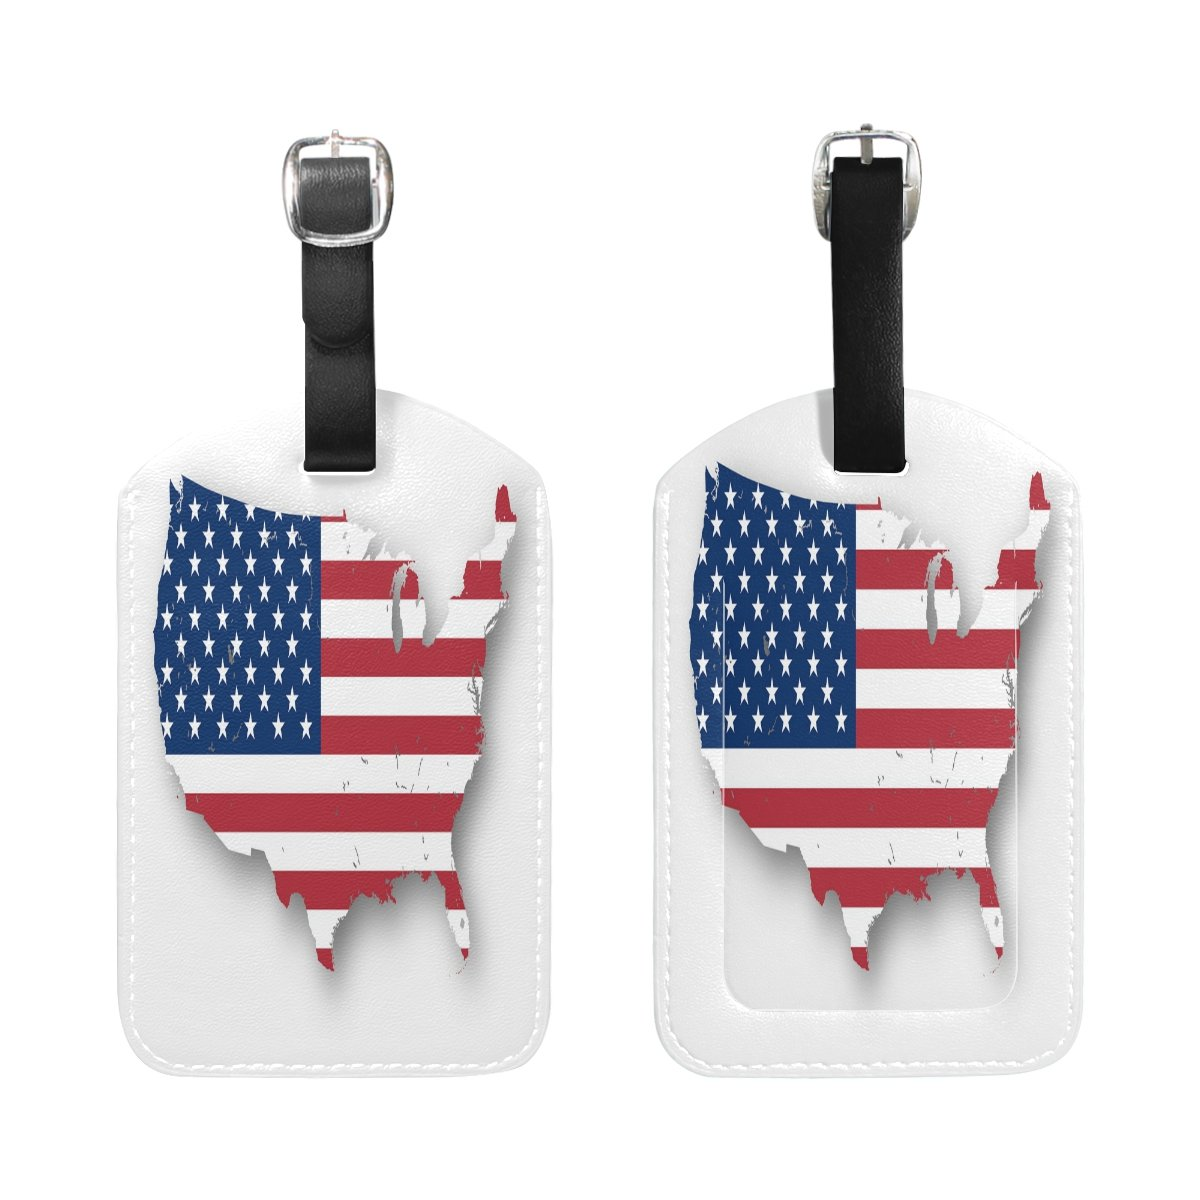 Saobao Travel Luggage Tag American Flag PU Leather Baggage Suitcase Travel ID Bag Tag 1Pcs